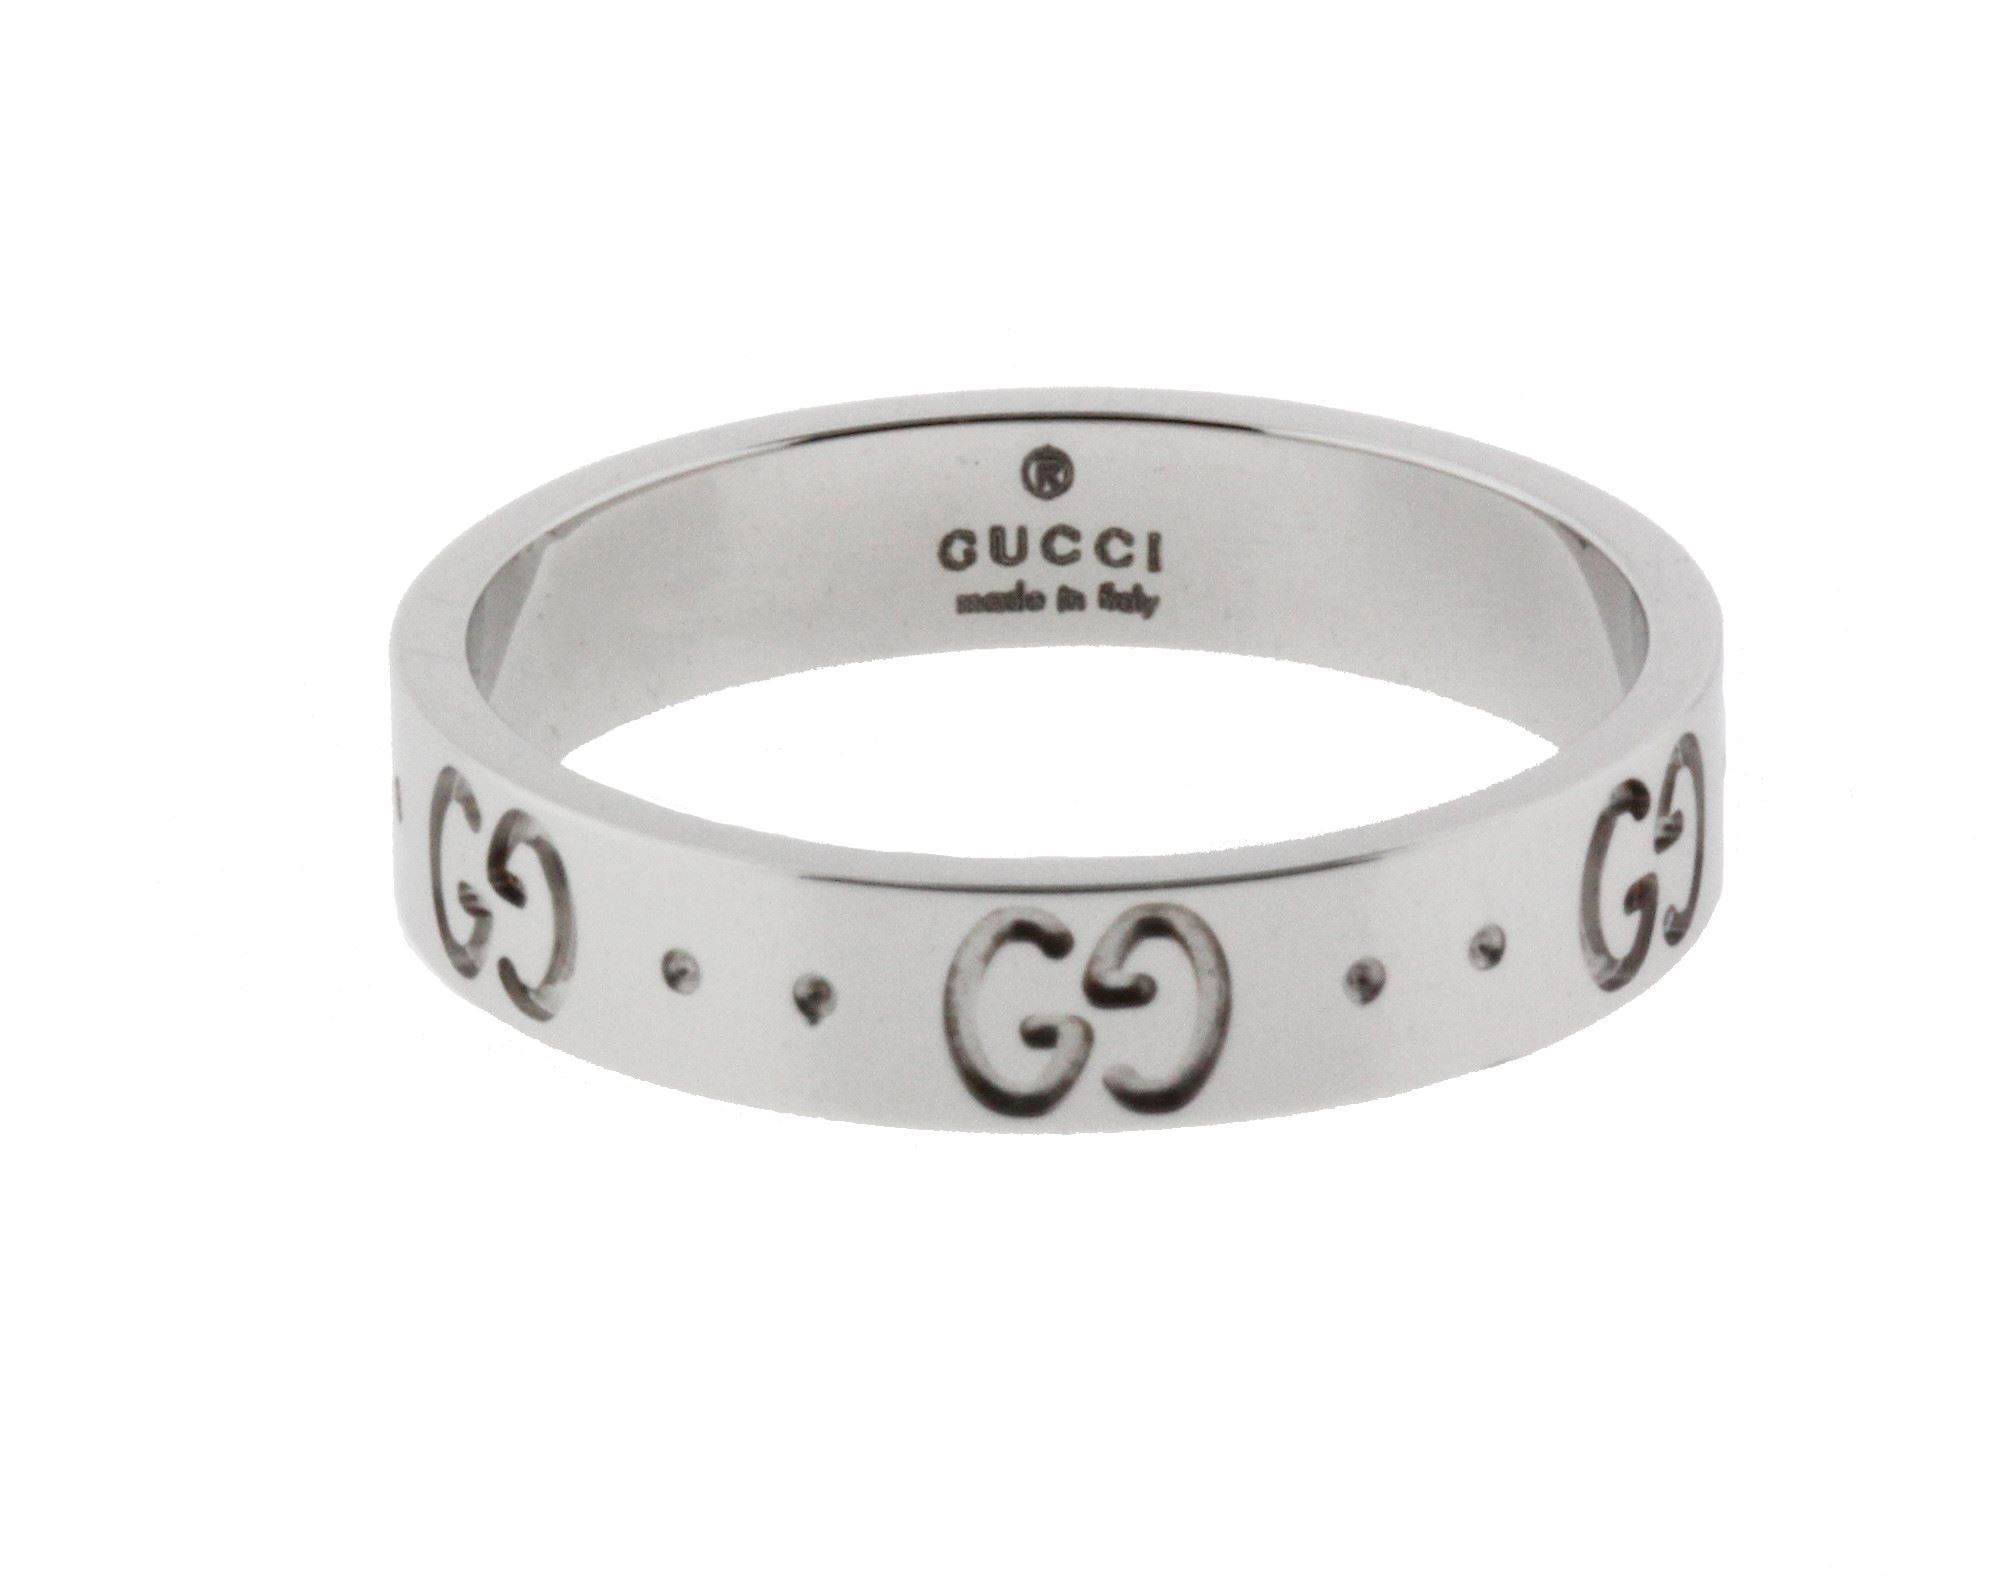 eced3c81f2ea83 Gucci Icon thin band band ring in 18 karat white gold new in box size 5.25